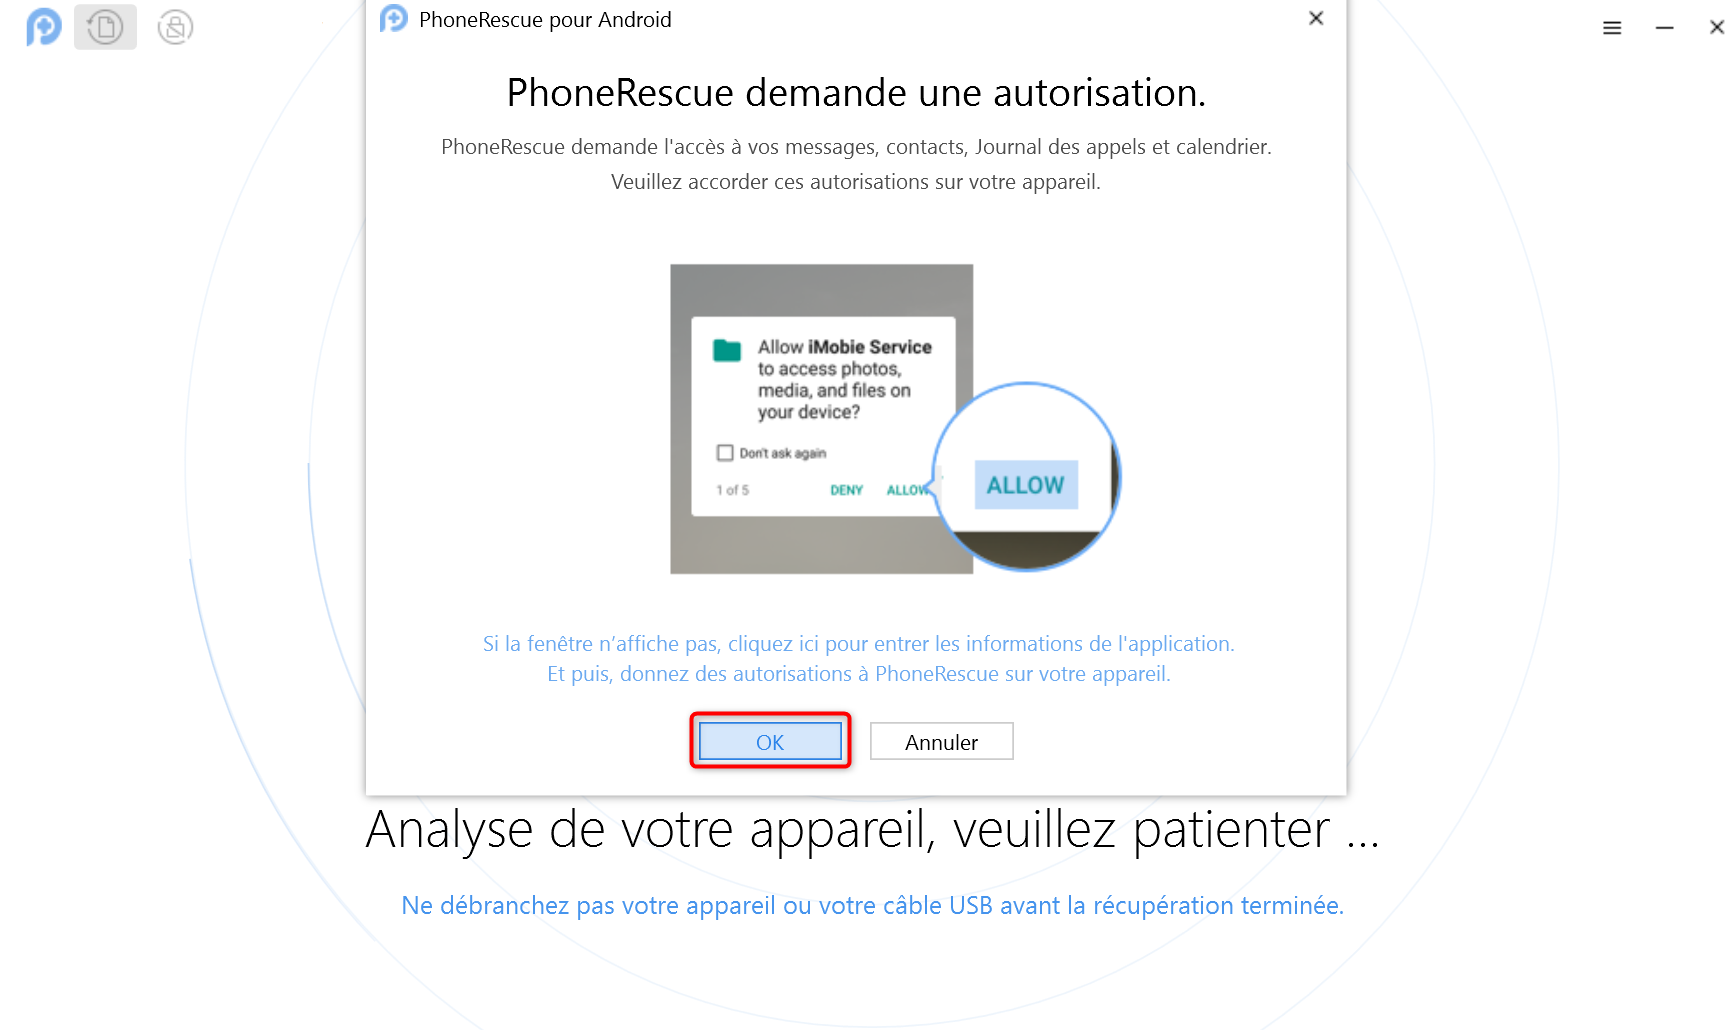 Phonerescue Demande Autorisation